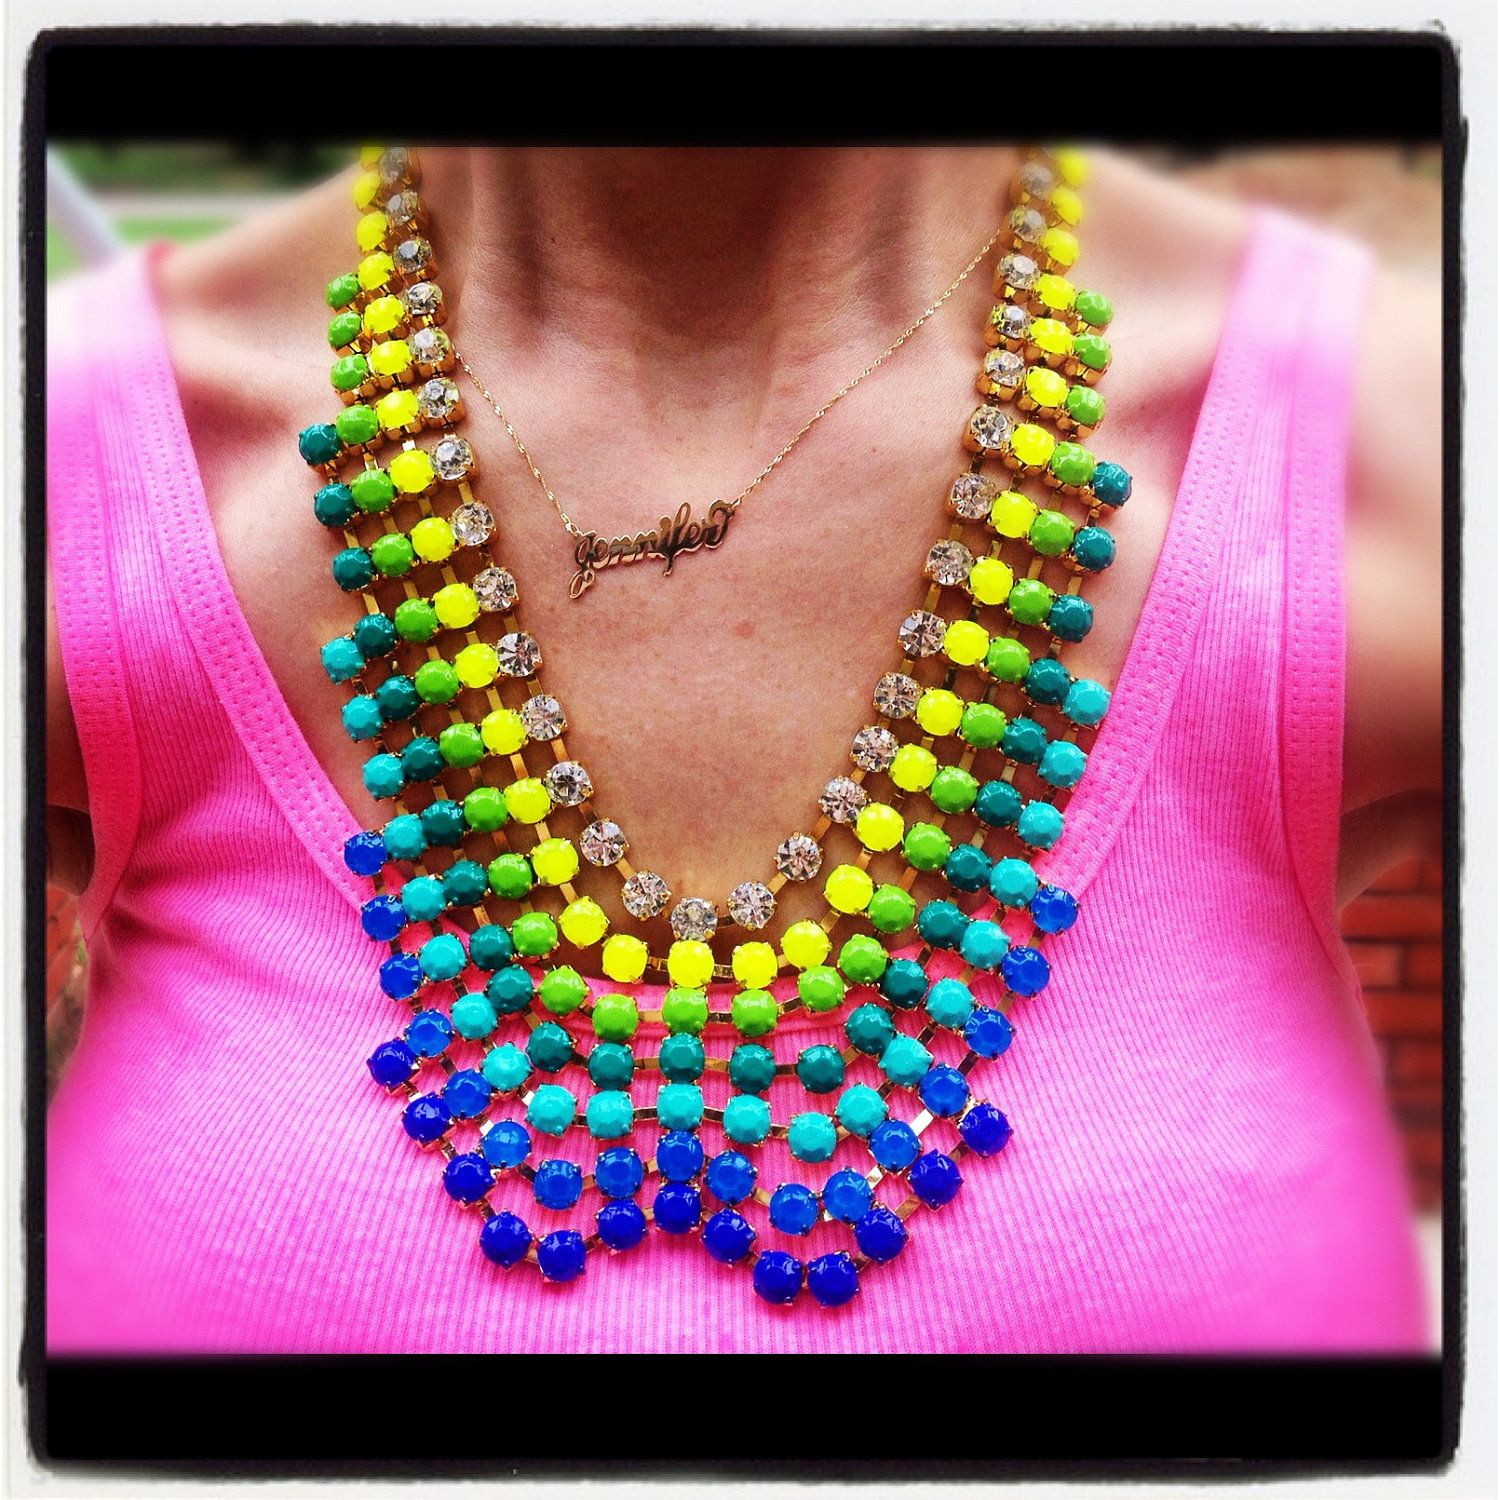 CUSTOM Huge Rhinestone Bib Statement Necklace - Belle de Couture